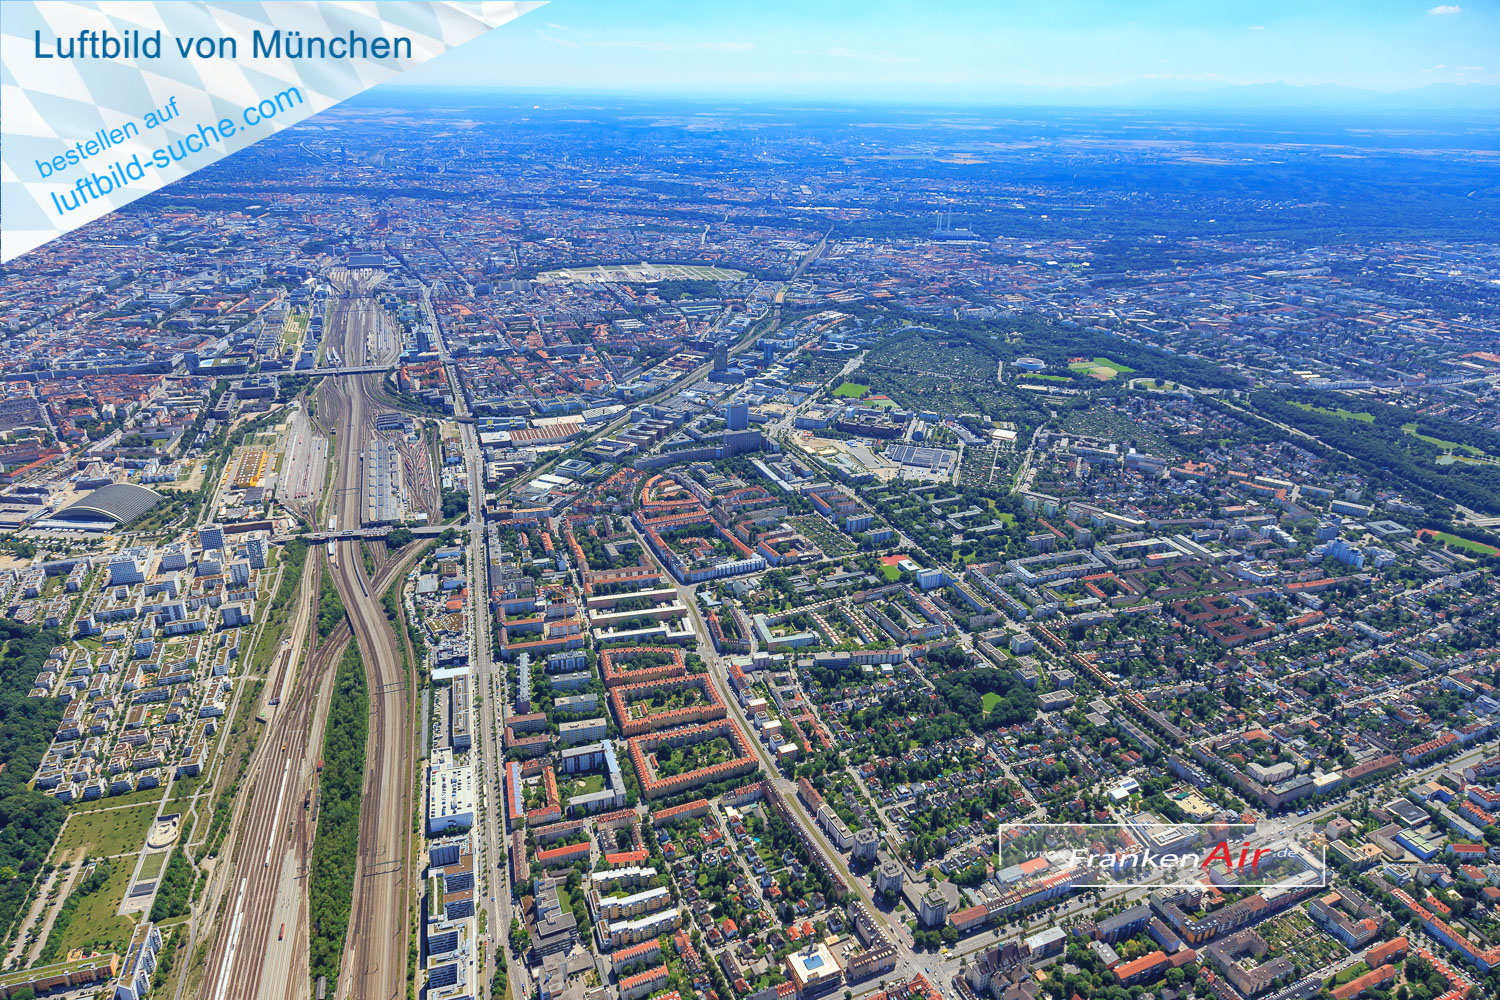 Laim-muenchen-17-2269